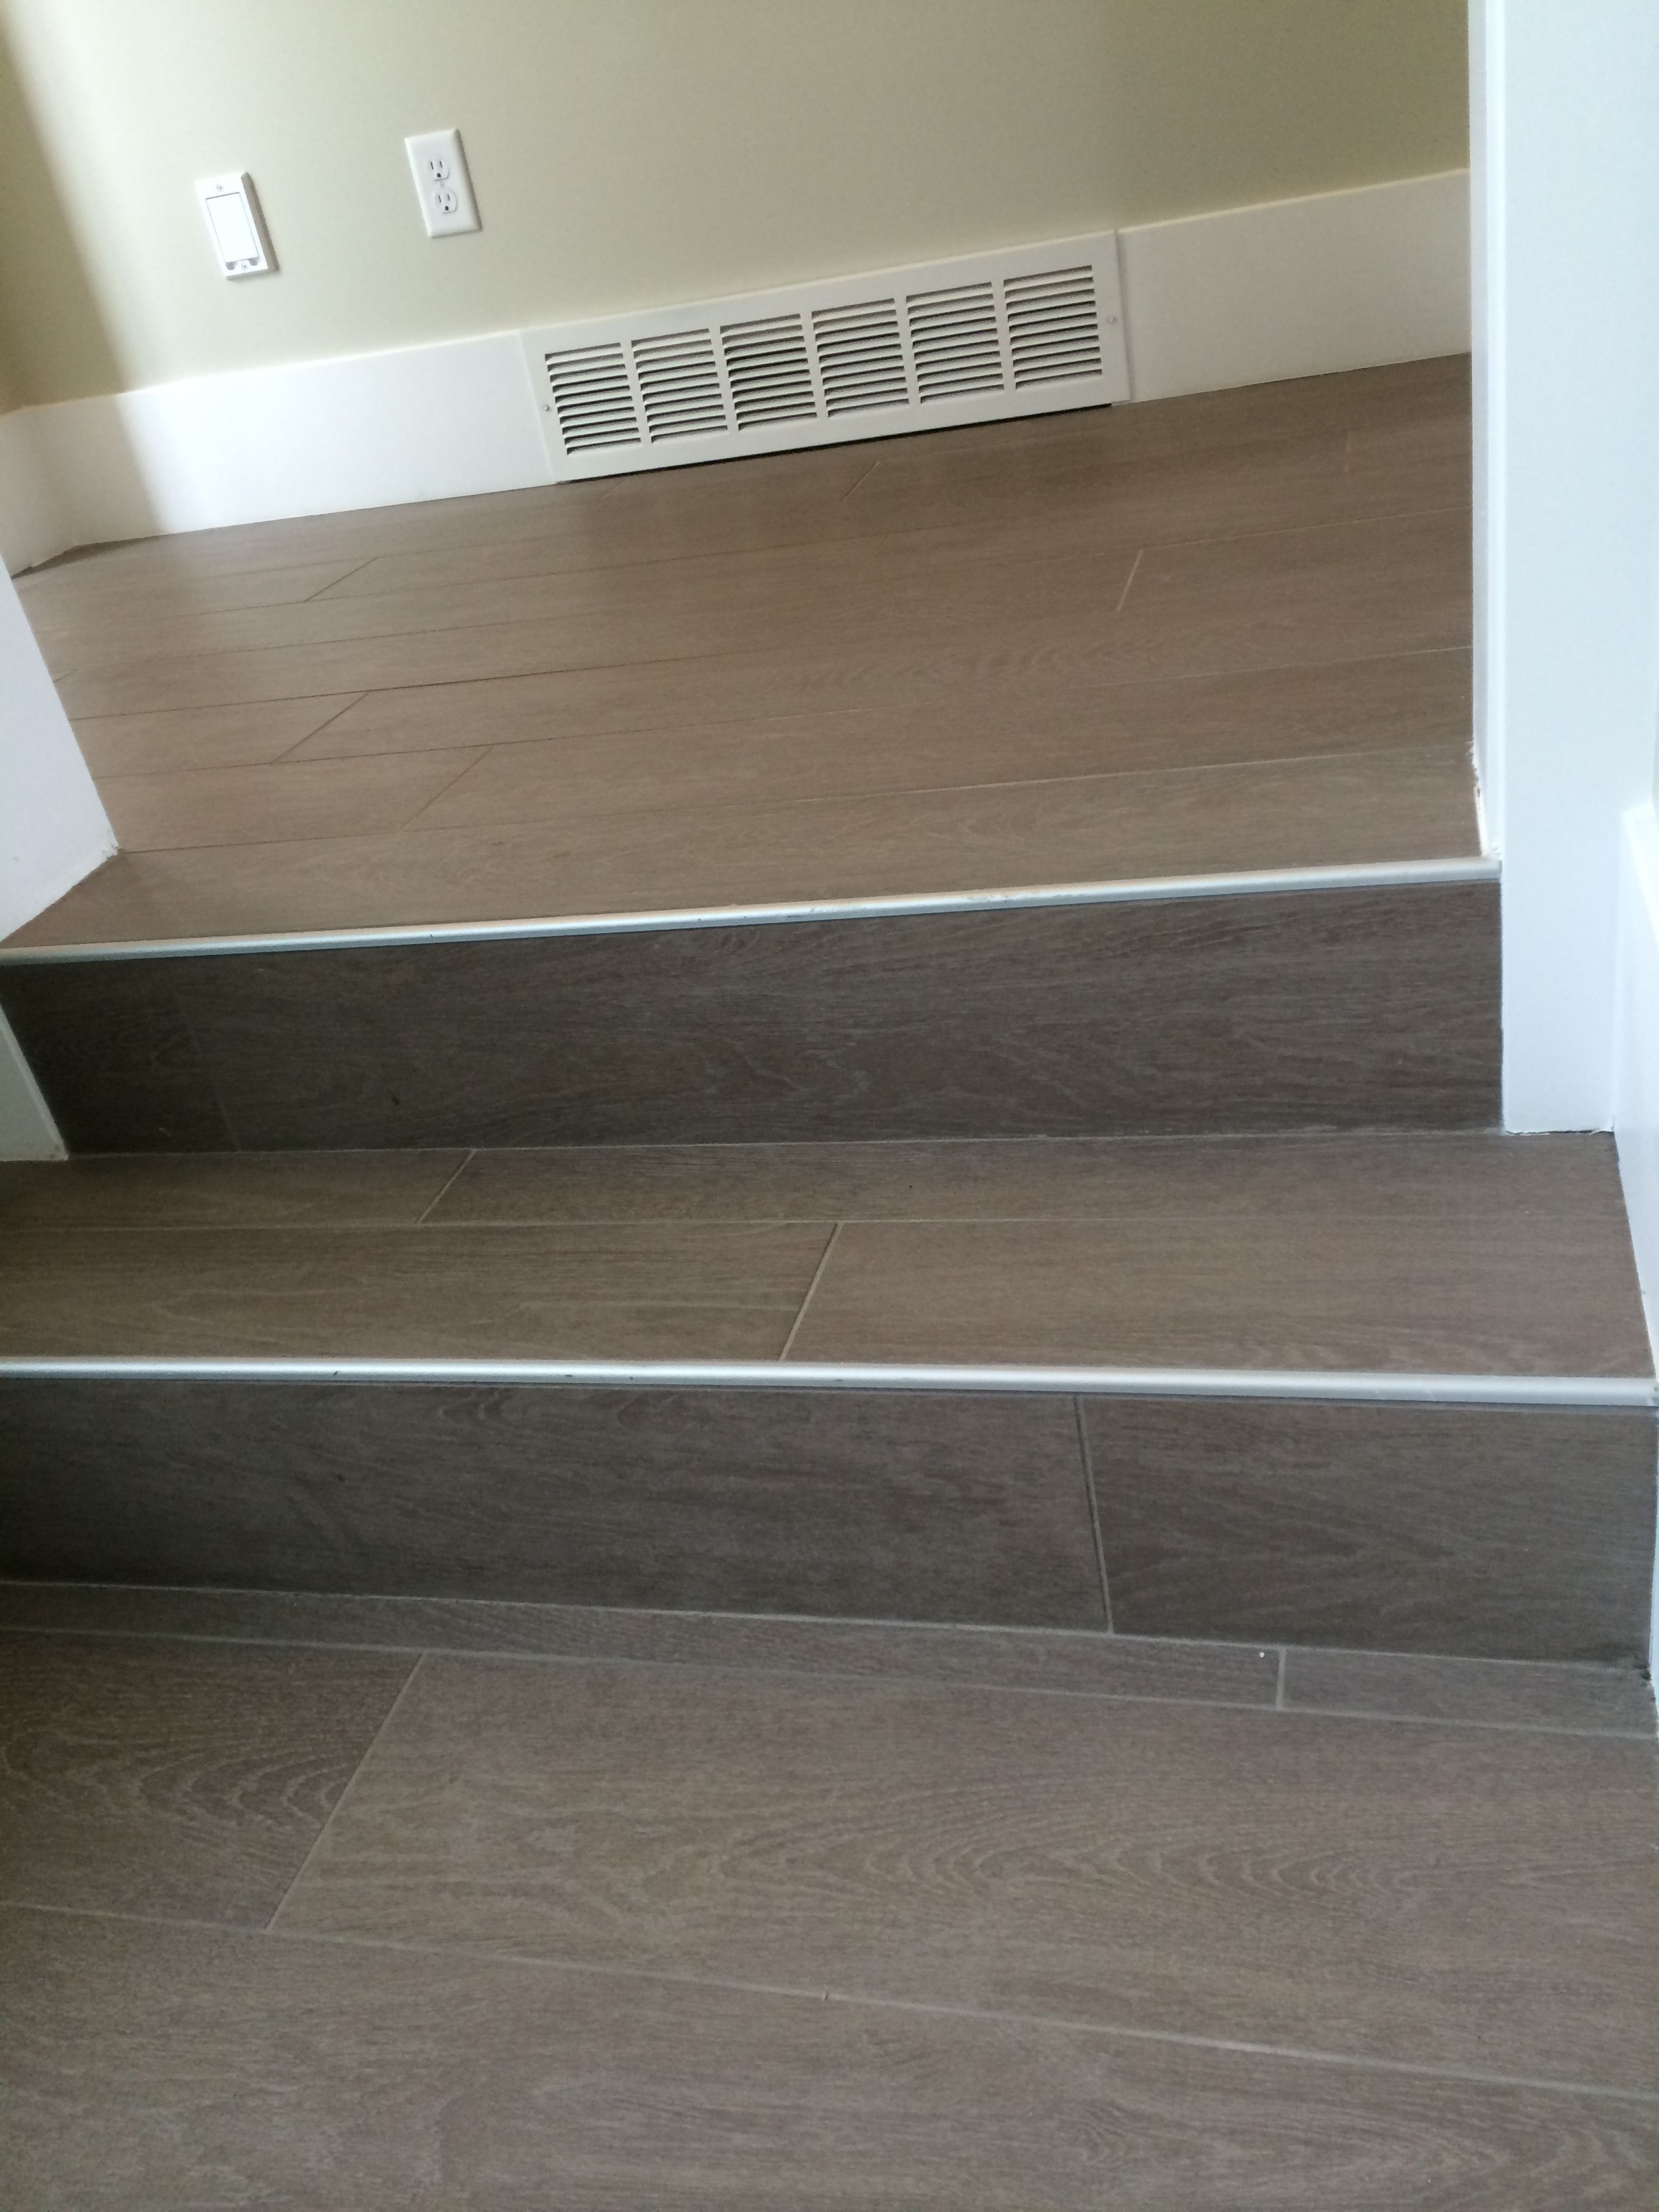 Wood Floor Tile On Stairs With Metal End Cap Finishes | Carpet Tiles For Steps